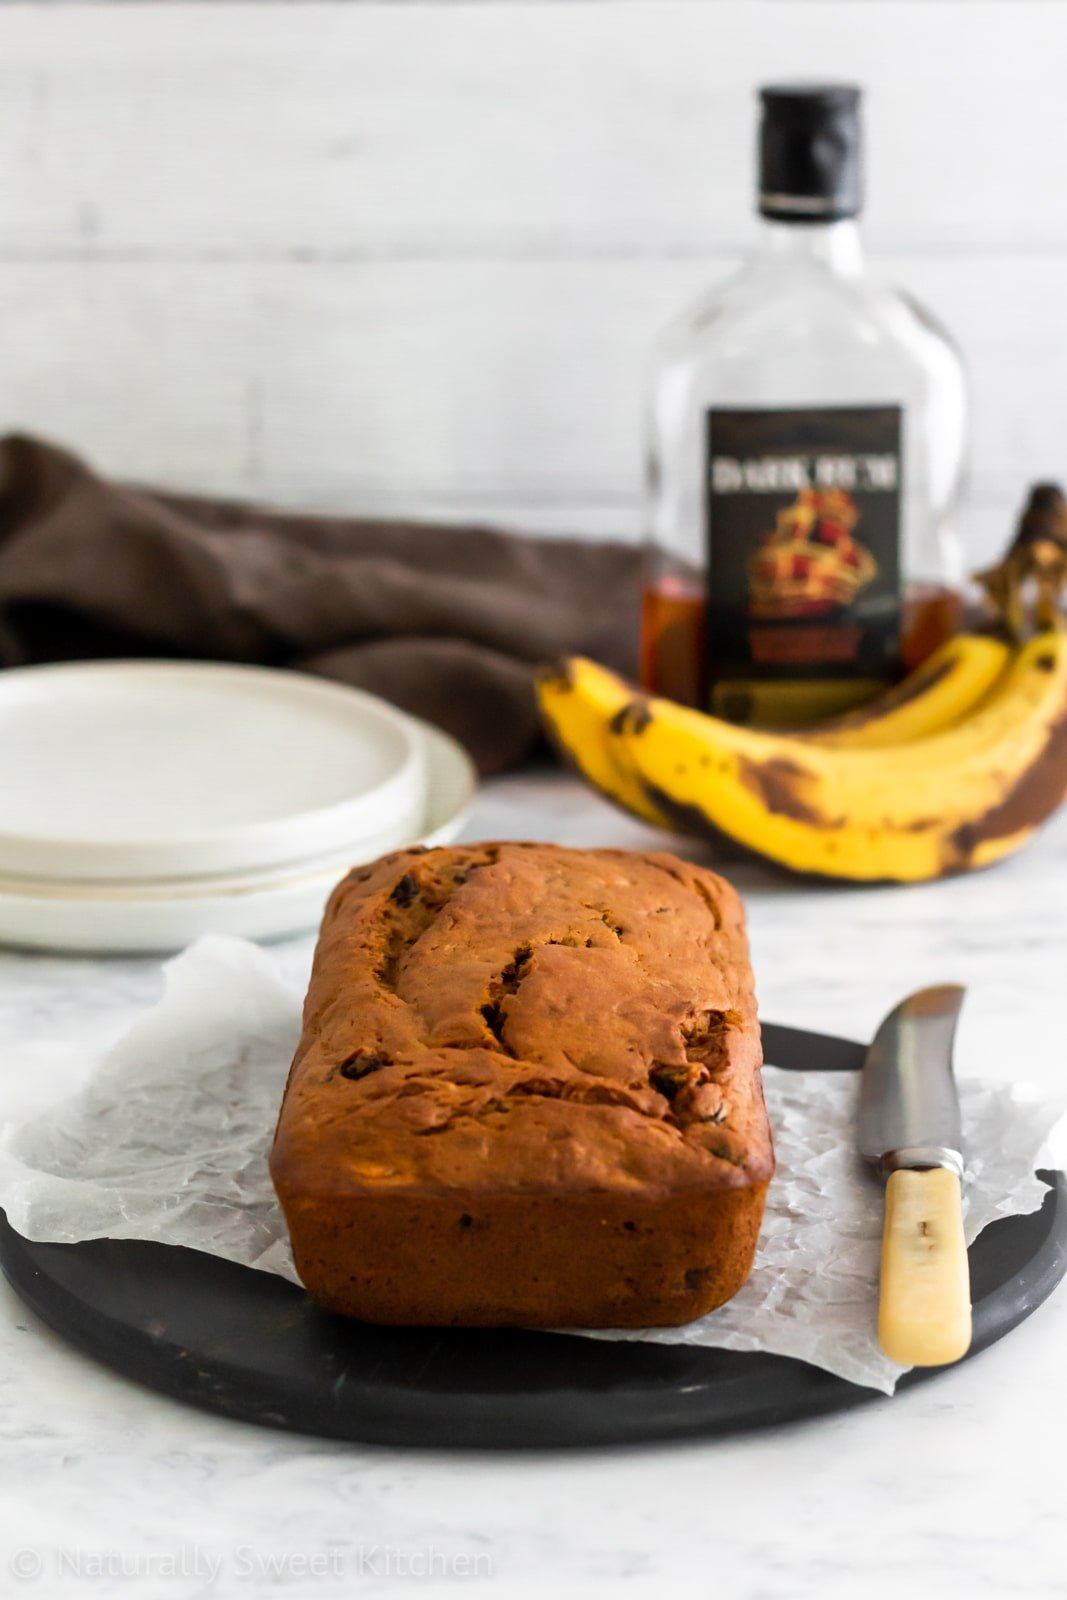 Refined sugar free banana bread infused with rum and raisin flavours.